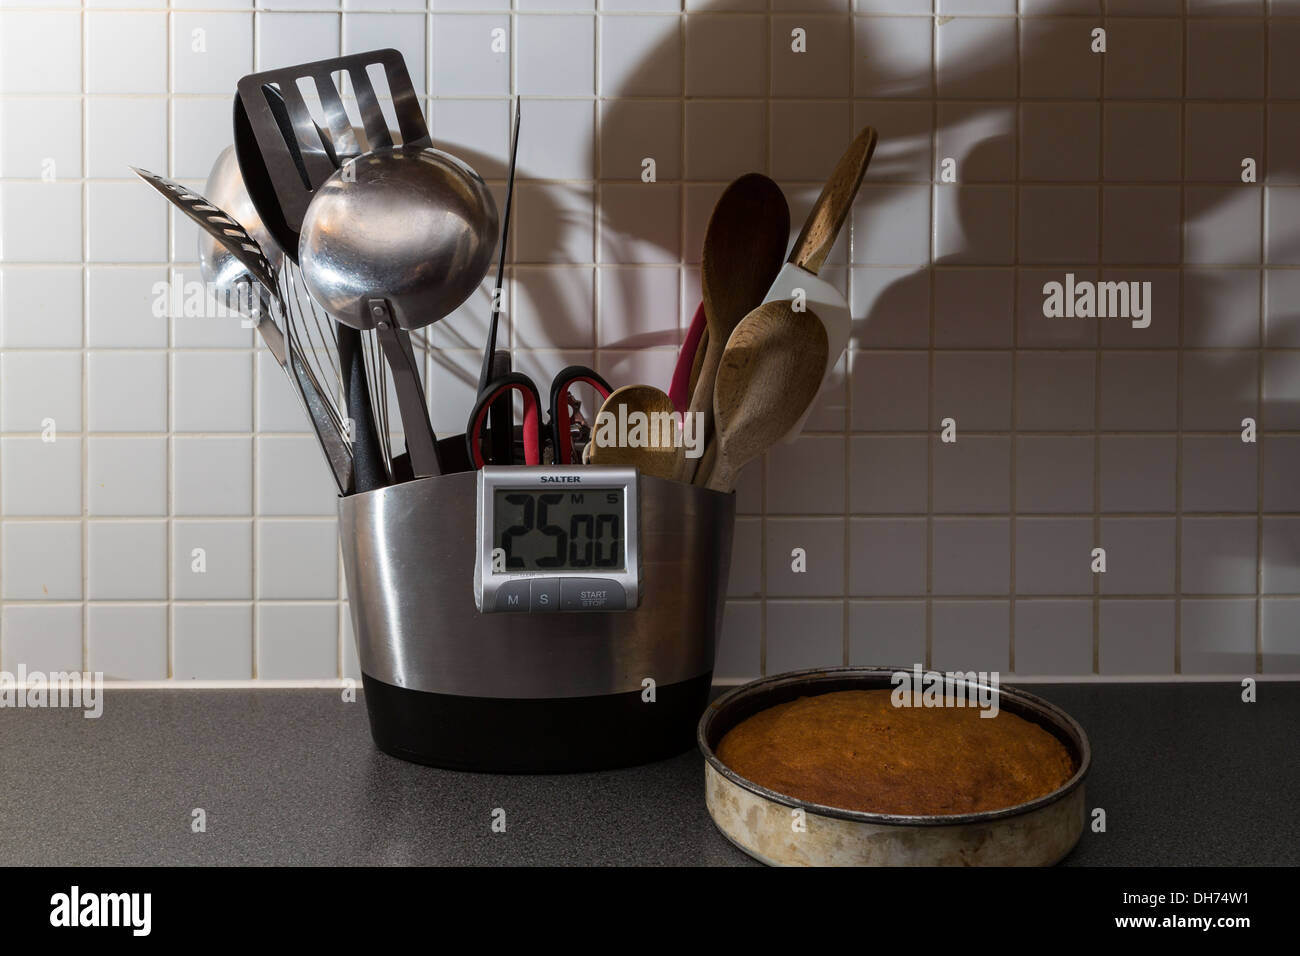 Kitchen utensils and a fresh baked cake. - Stock Image